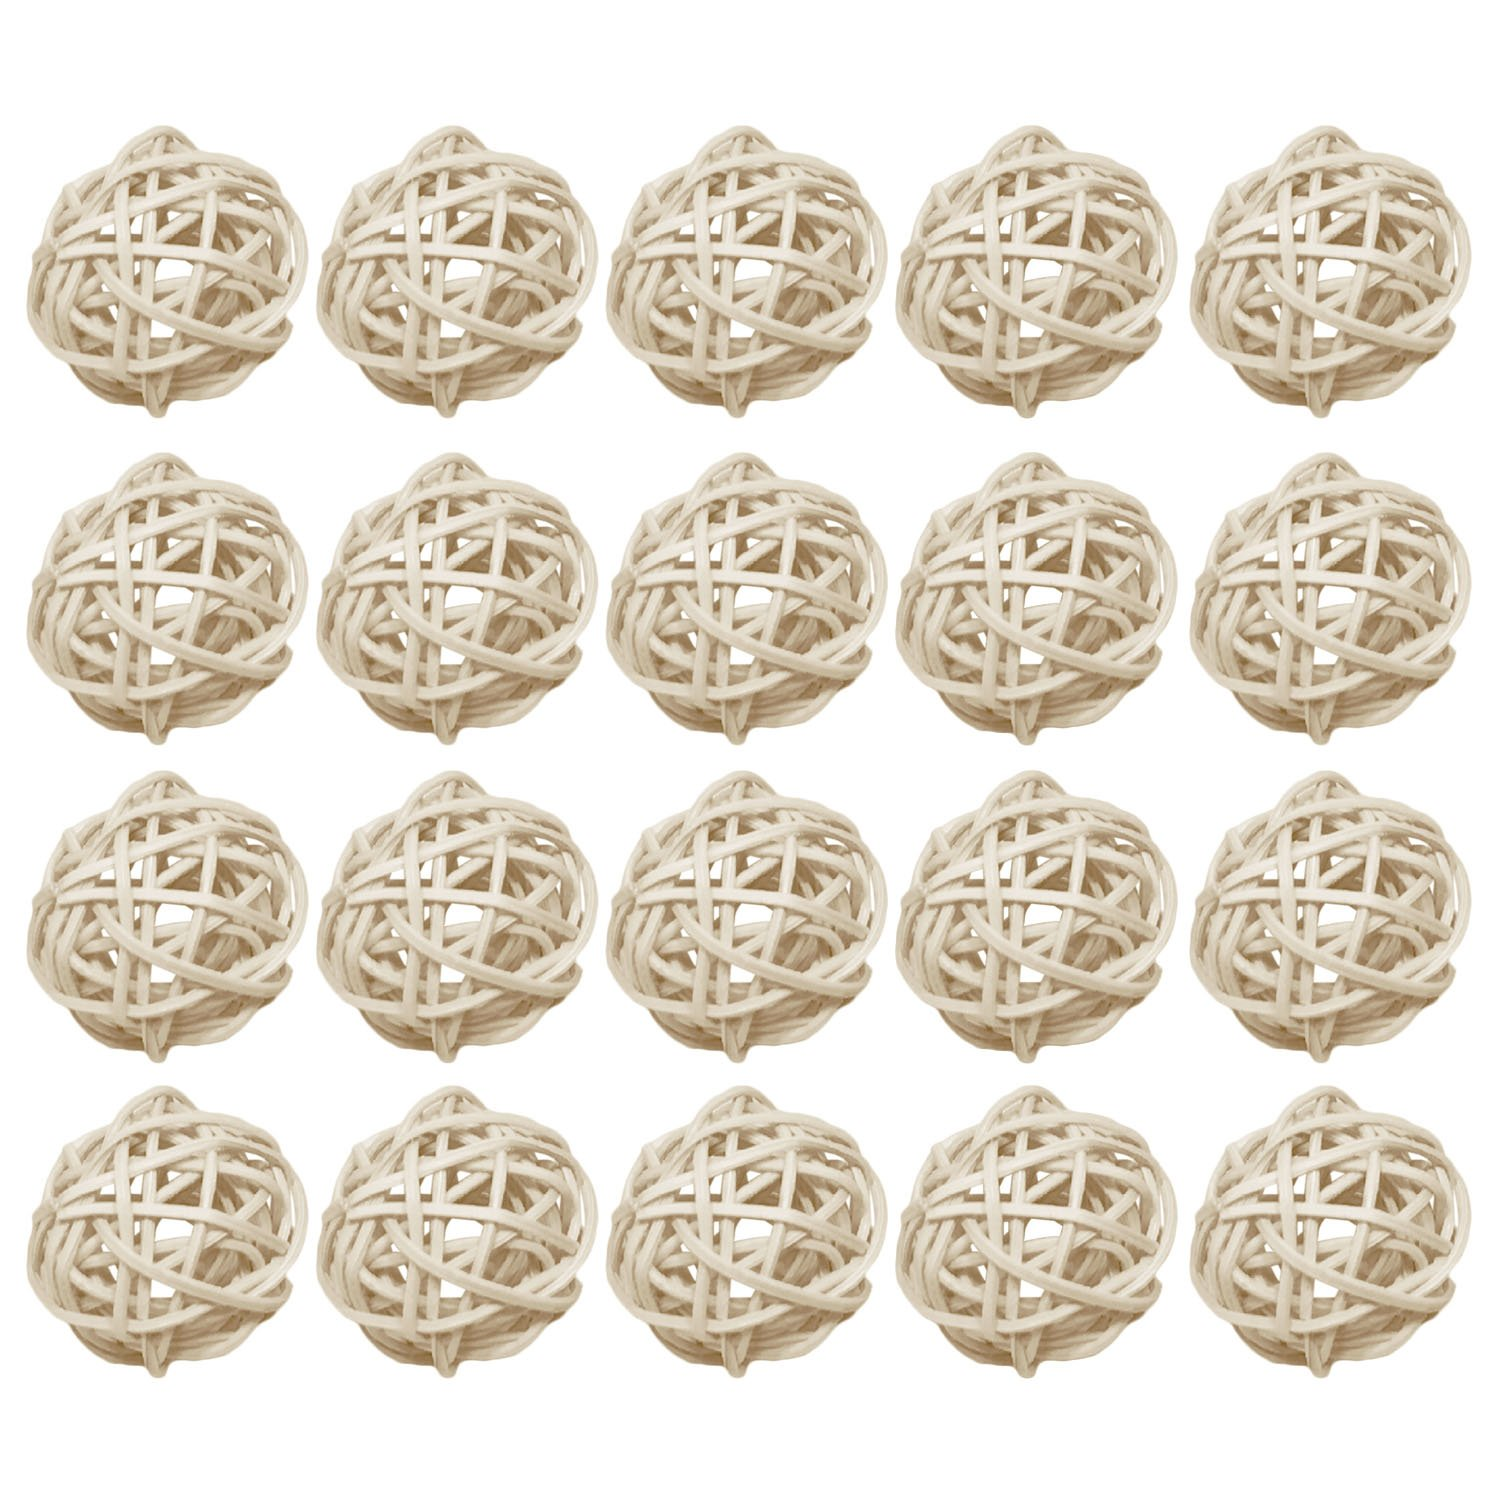 20 PCS Stylish Decoration Rattan Ball Ornaments for Christmas Halloween Wedding Party Home Garden Hotel Decoration DIY Craft White Gosear